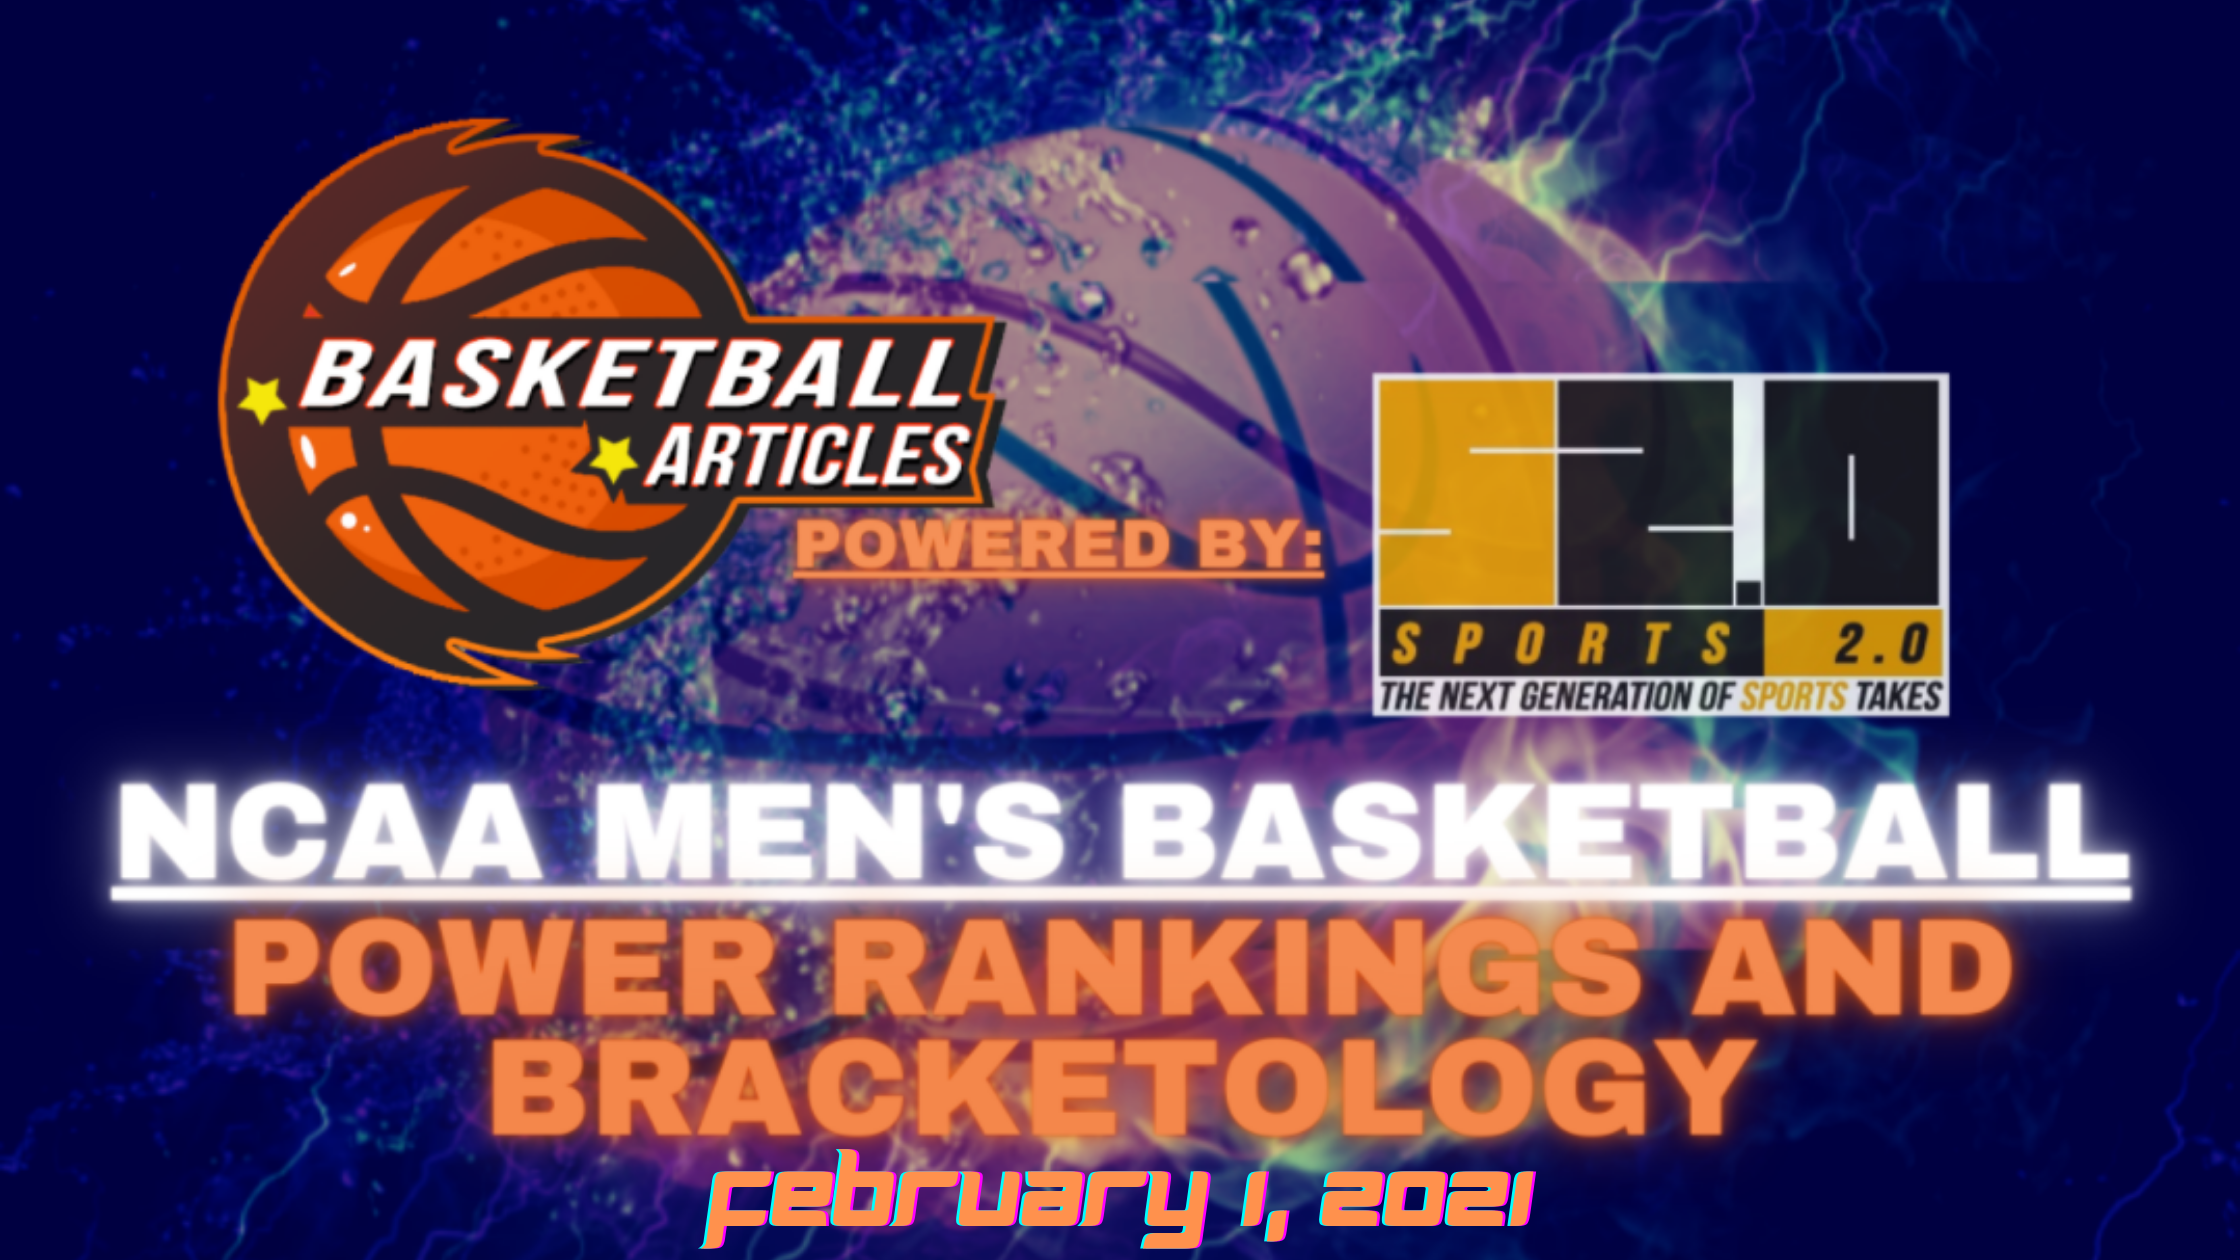 basketball power rankings and bracketology 02.01.21